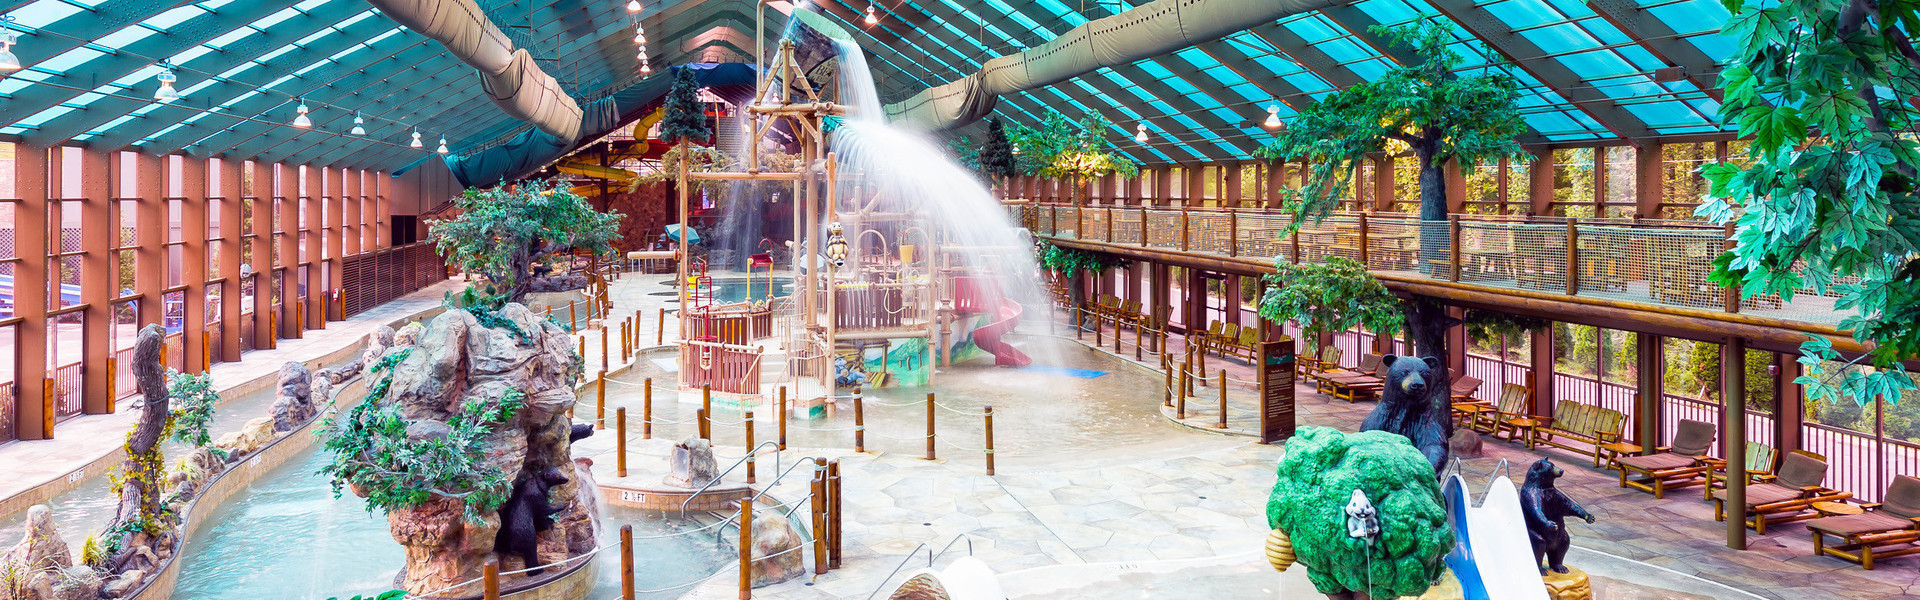 The Best Indoor Water Park in Tennessee | Wild Bear Falls